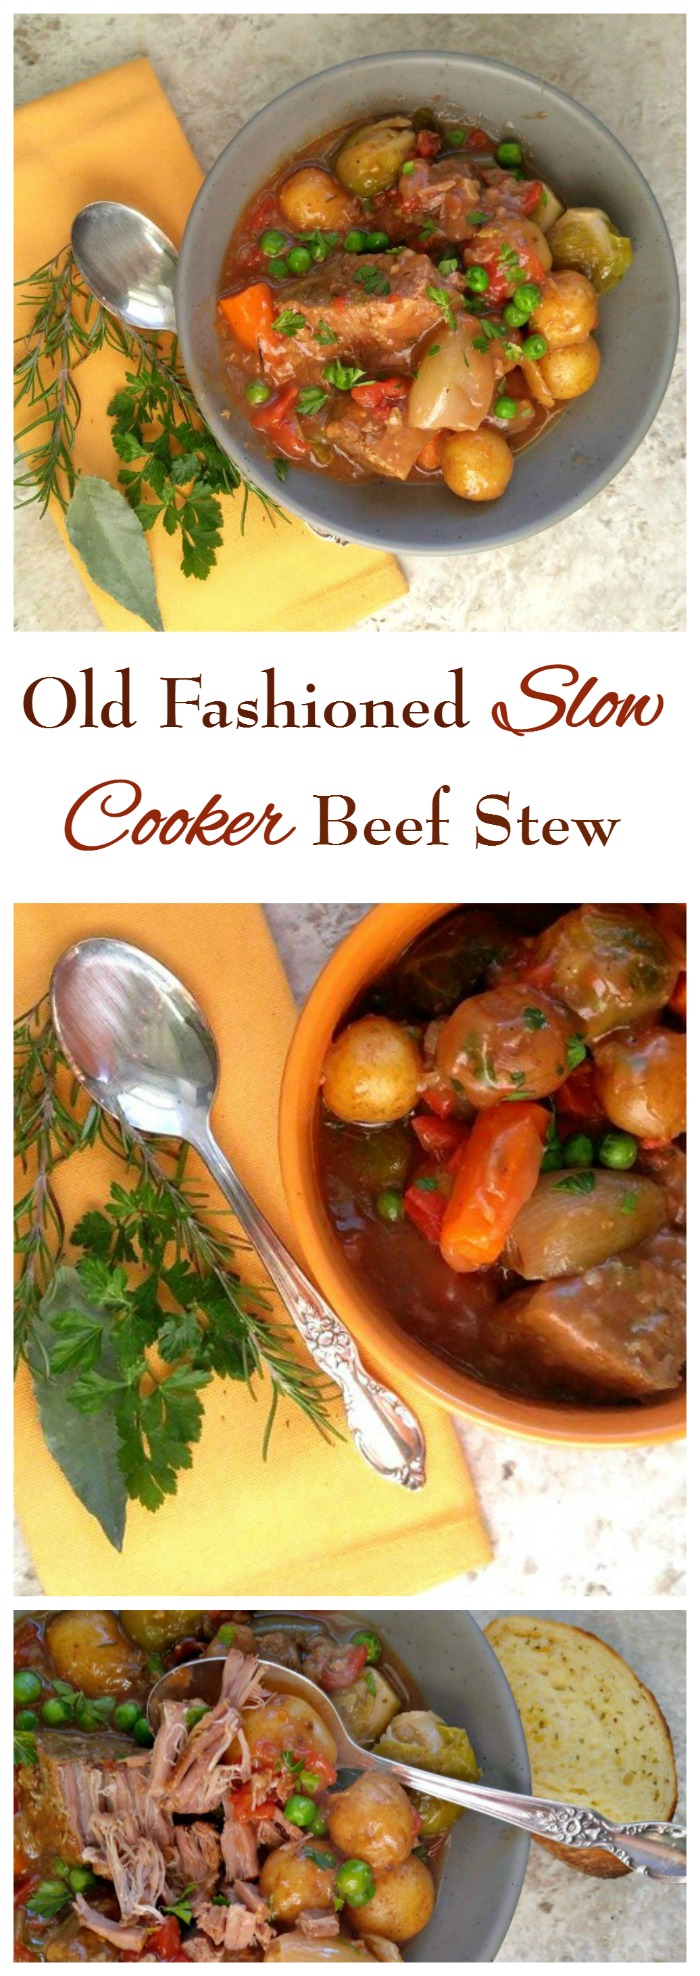 Old Fashioned Slow Cooker Beef Stew